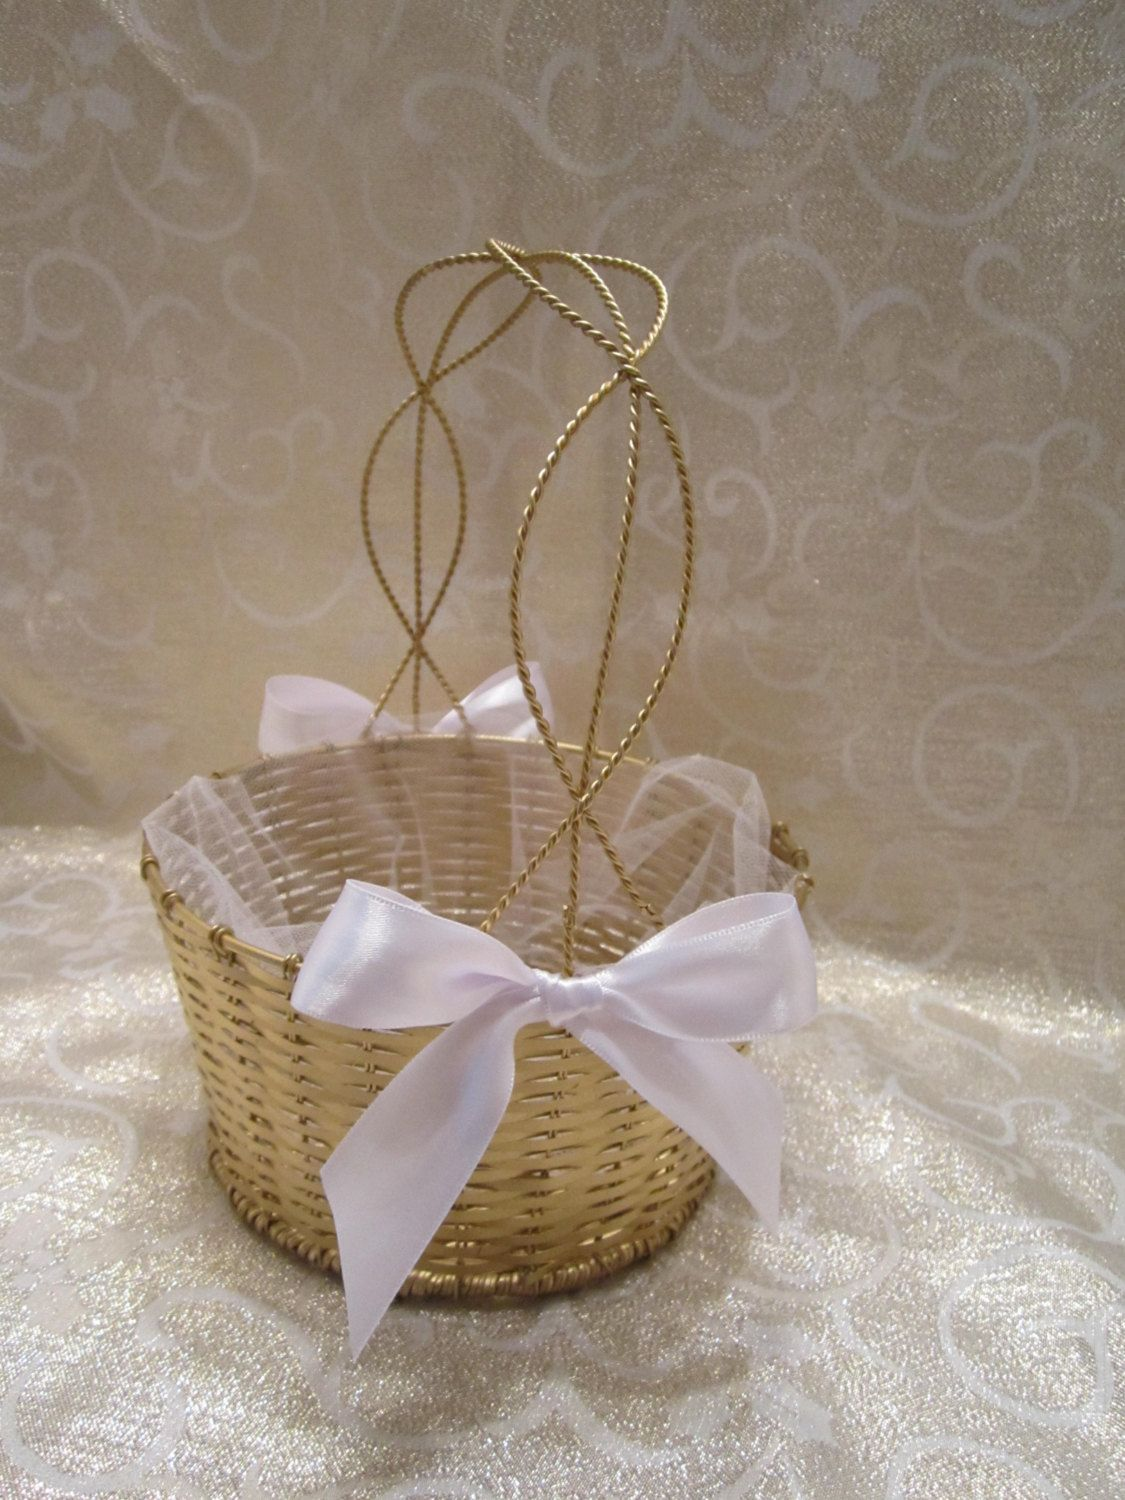 SOLD - Flower Girl Basket - Gold Metal Wire Basket - Dressed Up and Wedding Ready by VKVDesigns on Etsy